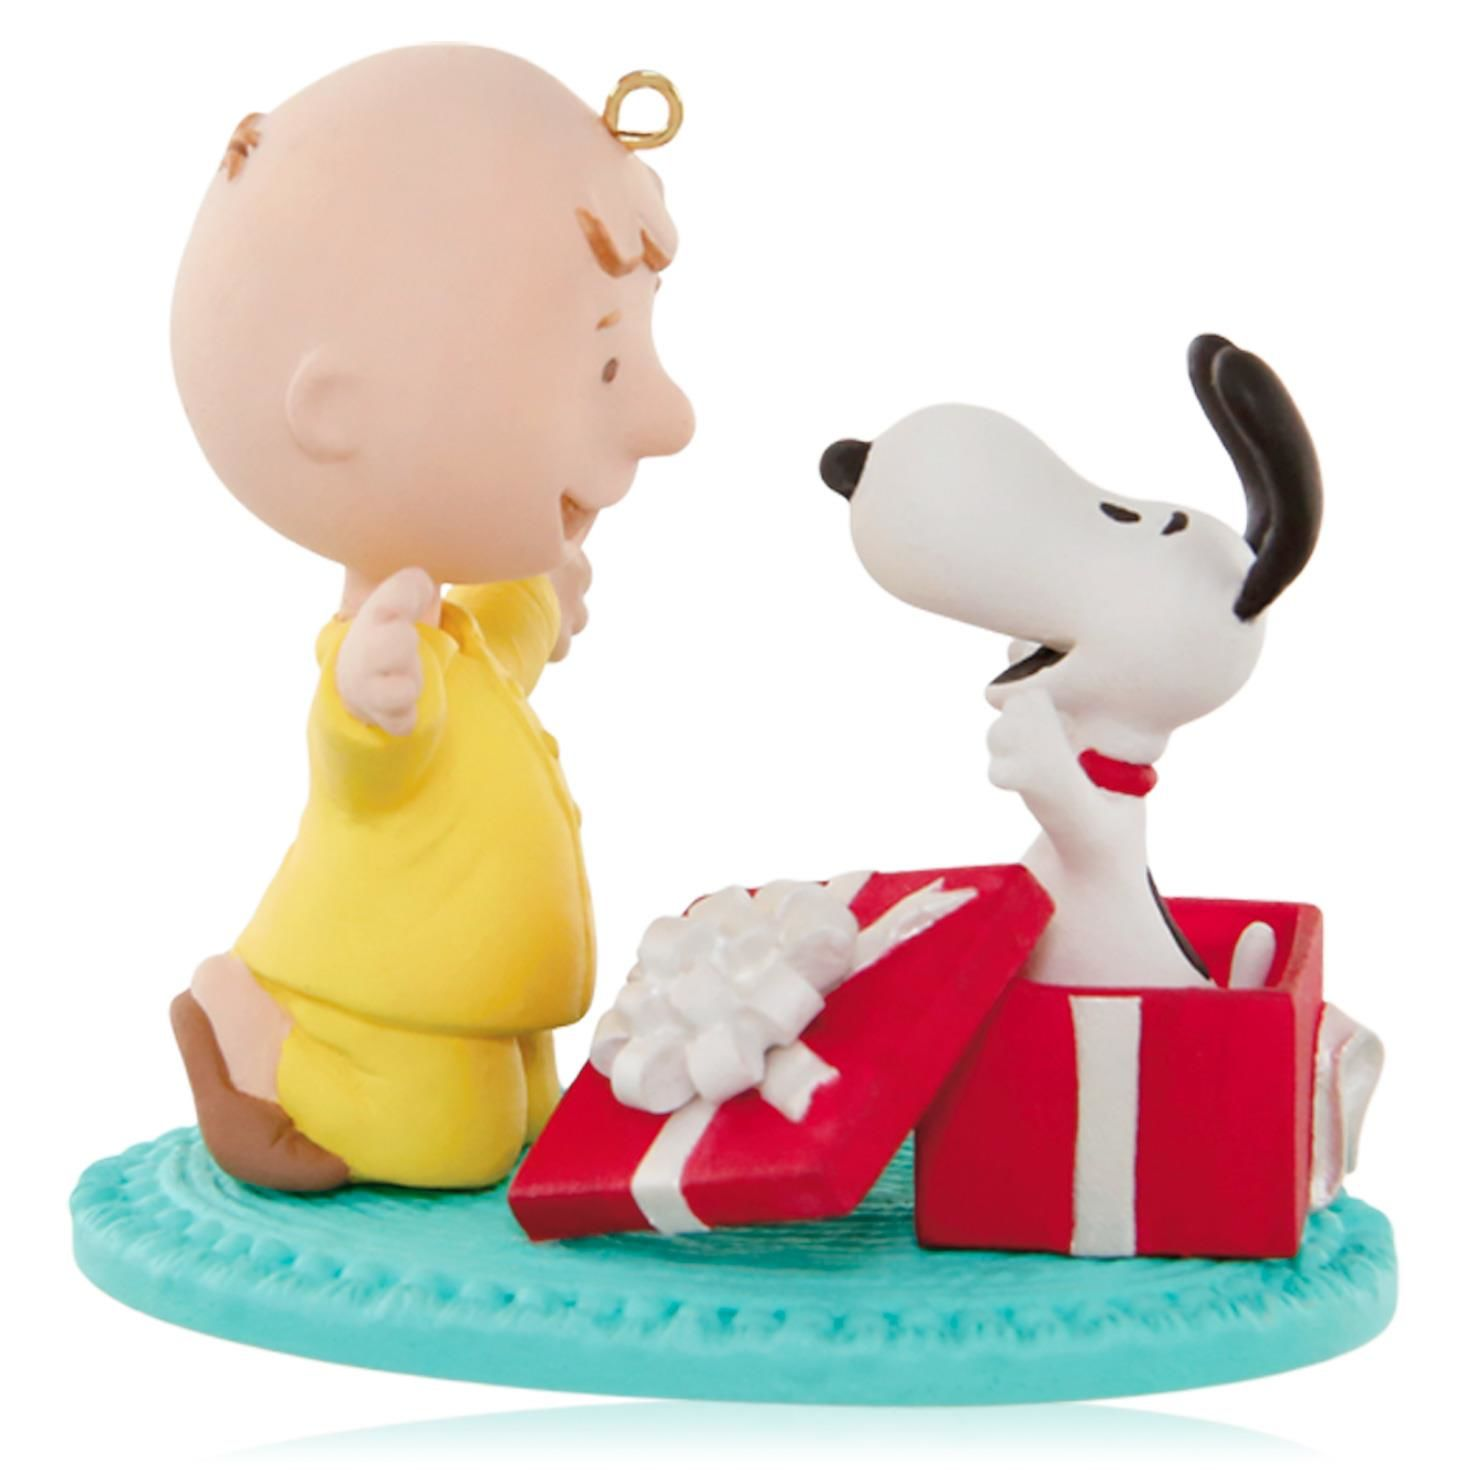 the best attitude 0dd82 1b747 2015 Snoopy For Christmas Hallmark Keepsake Ornament - Hooked on Hallmark  Ornaments